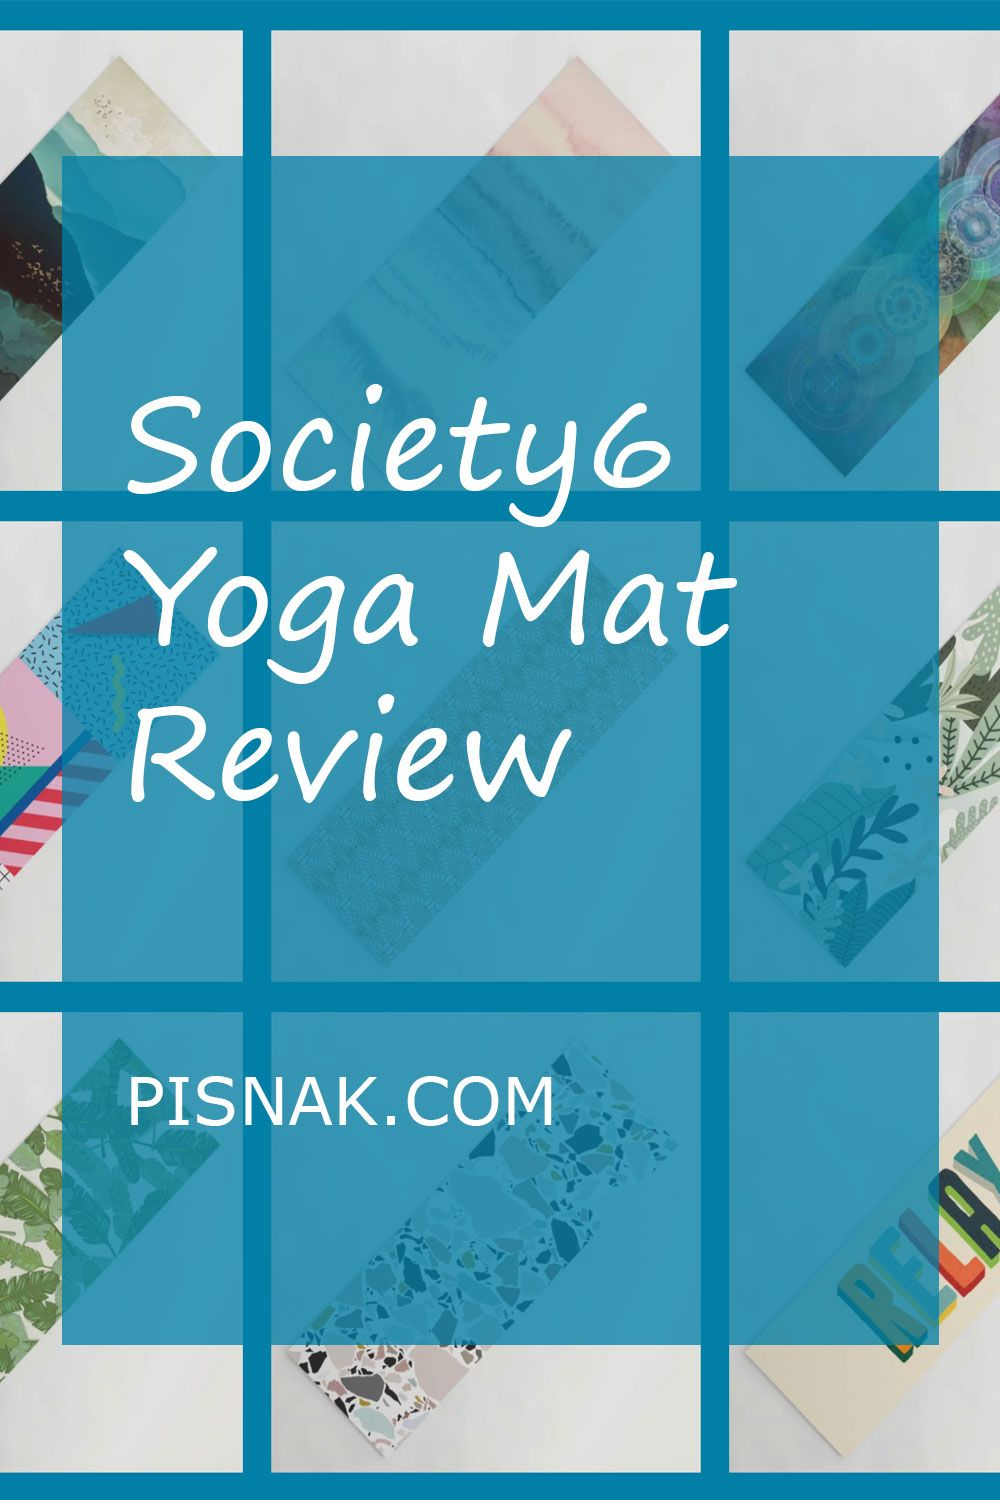 New Society6 Yoga Mat Review Relax With Style 2020 In 2020 Yoga Mat Reviews Yoga Mat Yoga